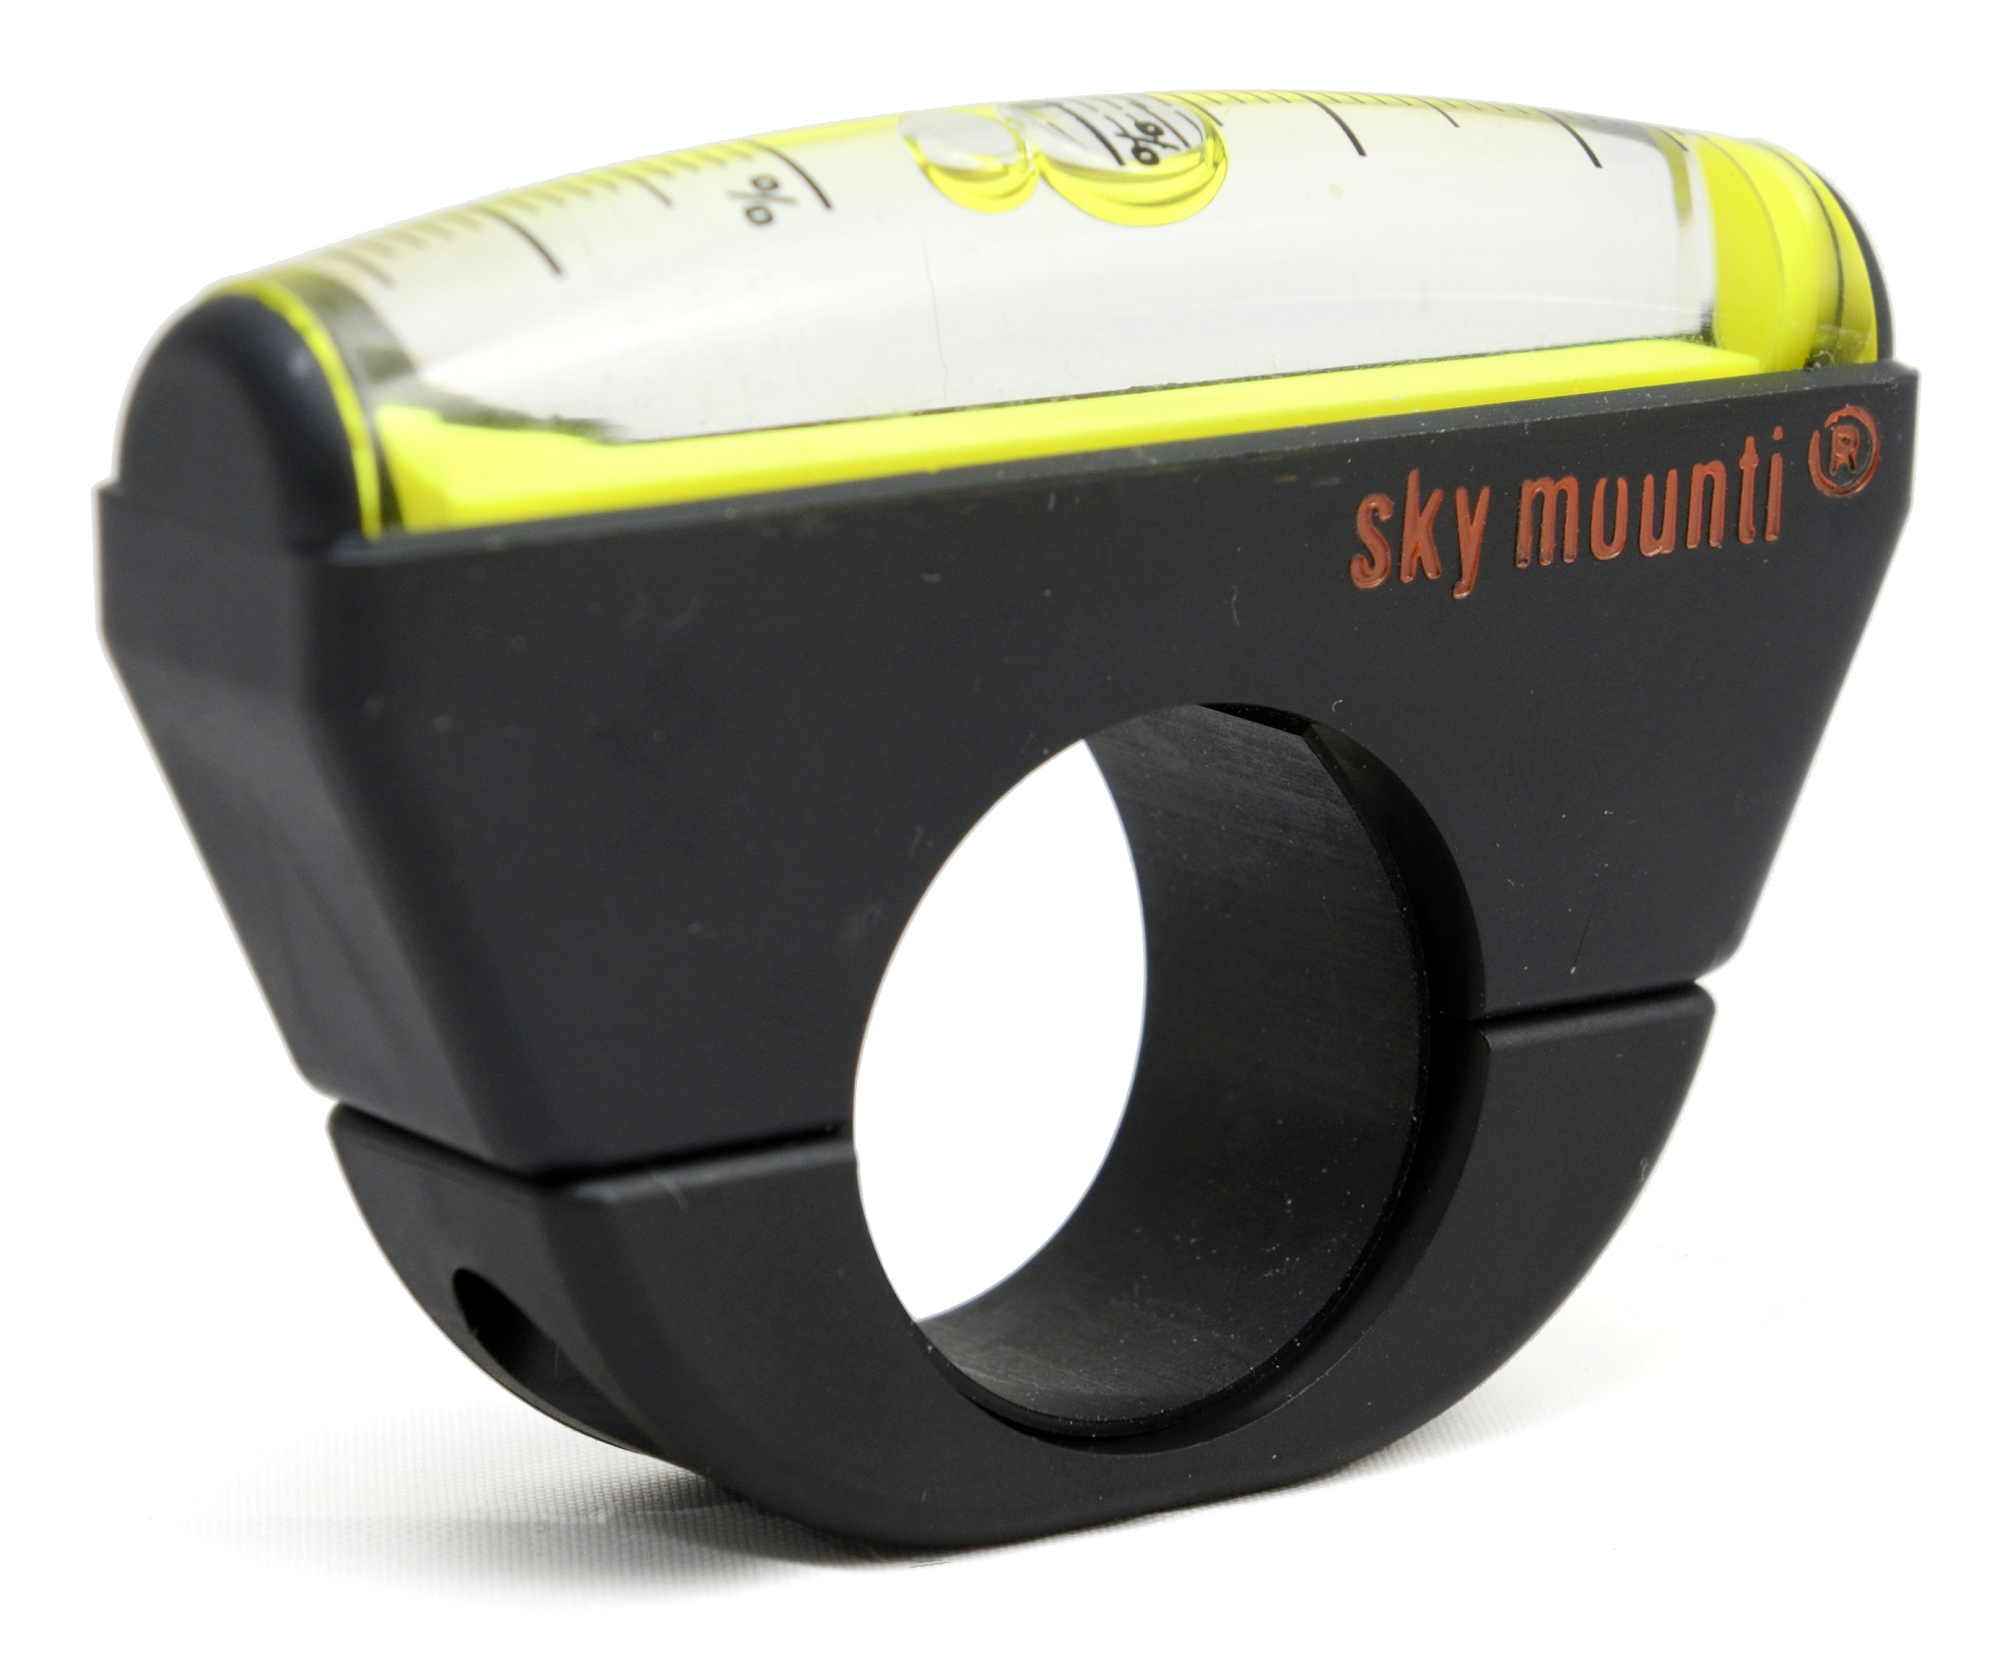 Bike Inclinometer Black 26.0mm +27/-15% Sky Mounti